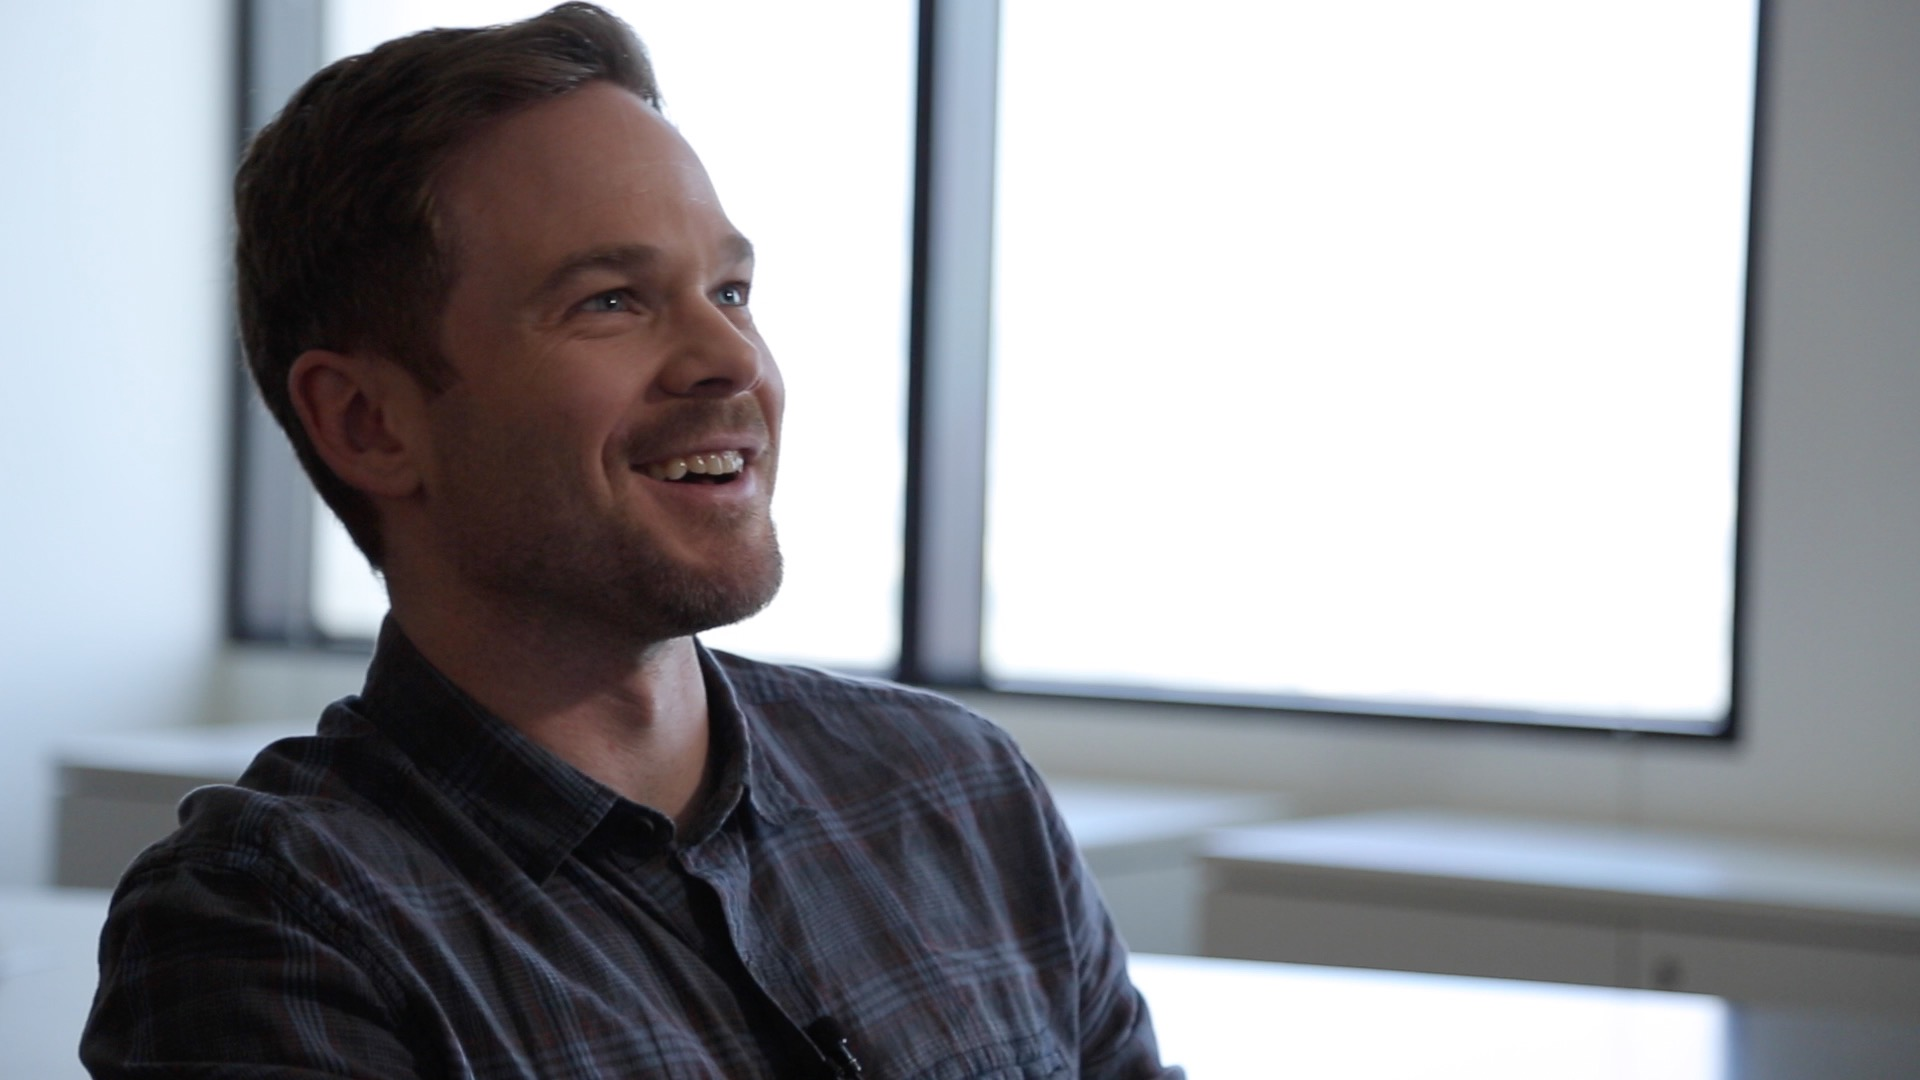 Shawn Ashmore loves to act in video games